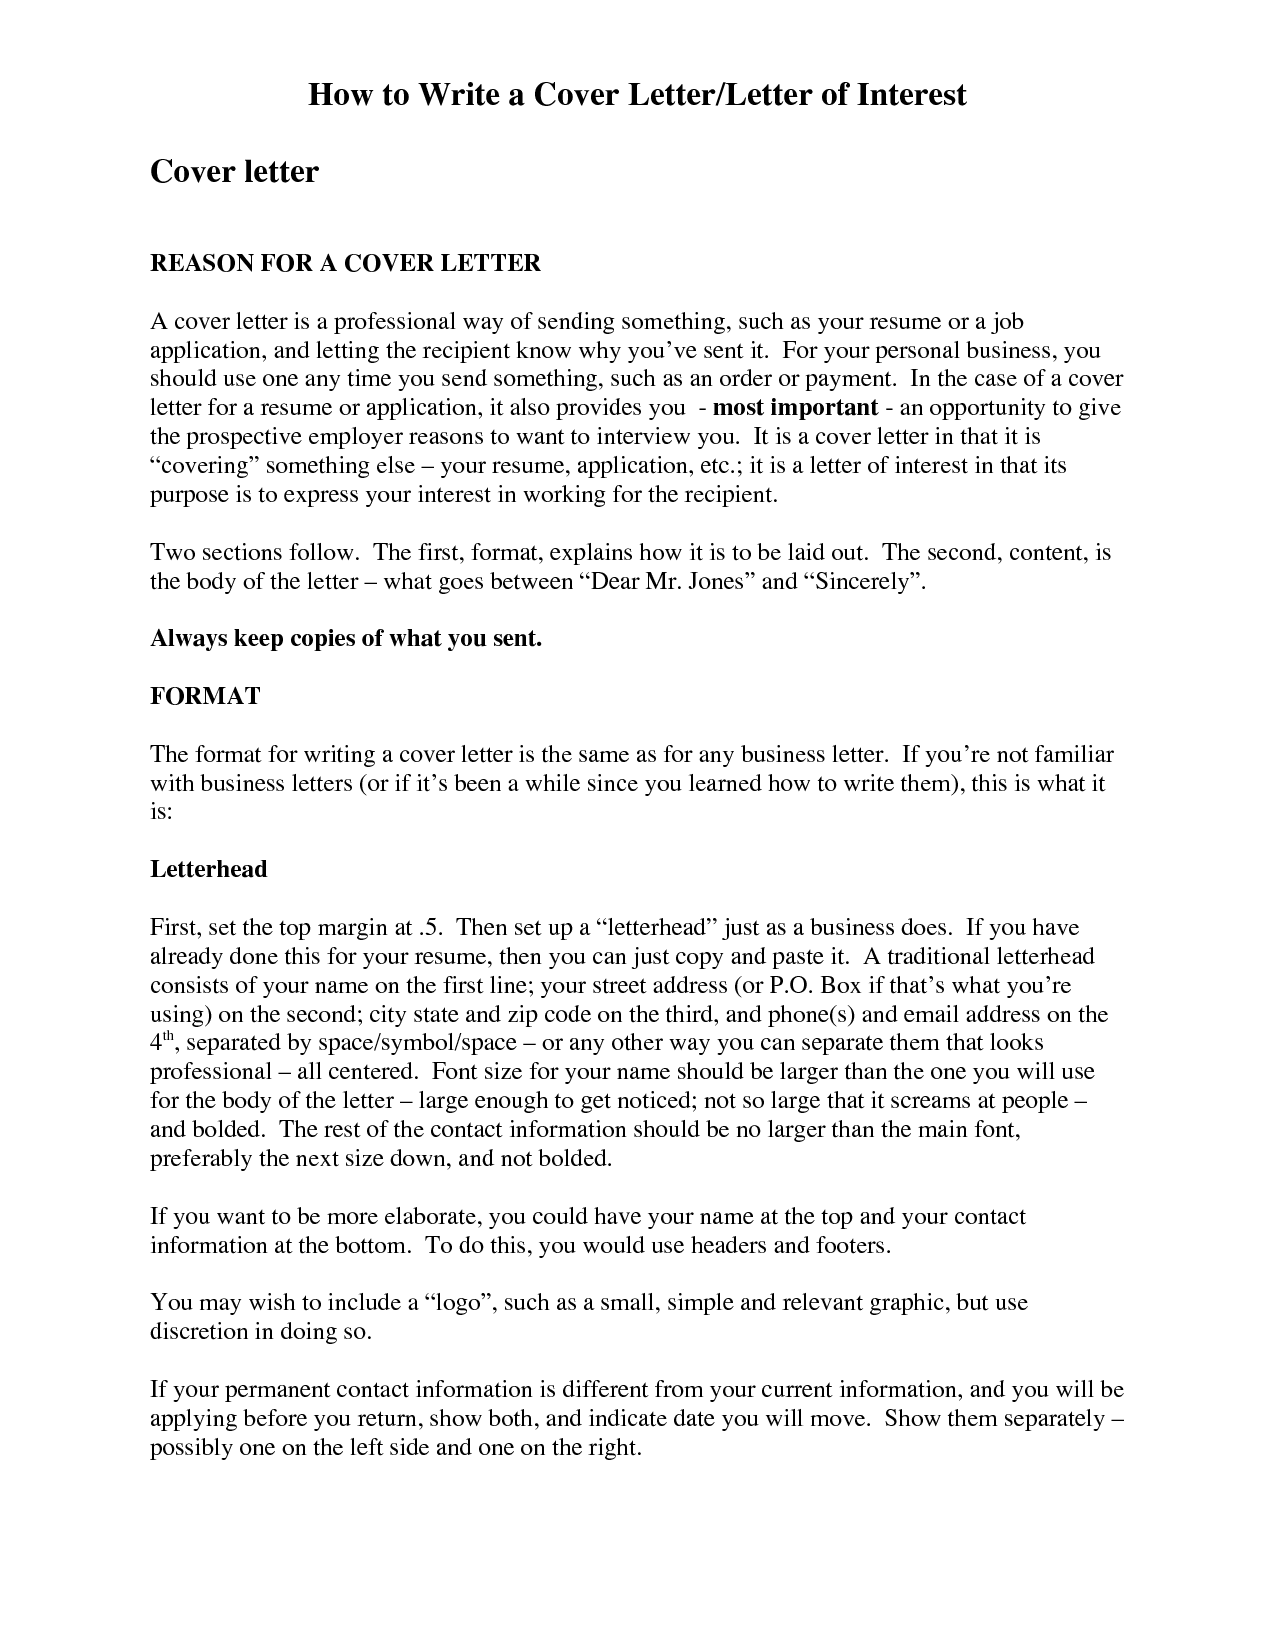 How to write a cover letter of interest example for a job for How to prepare a cover letter for employment